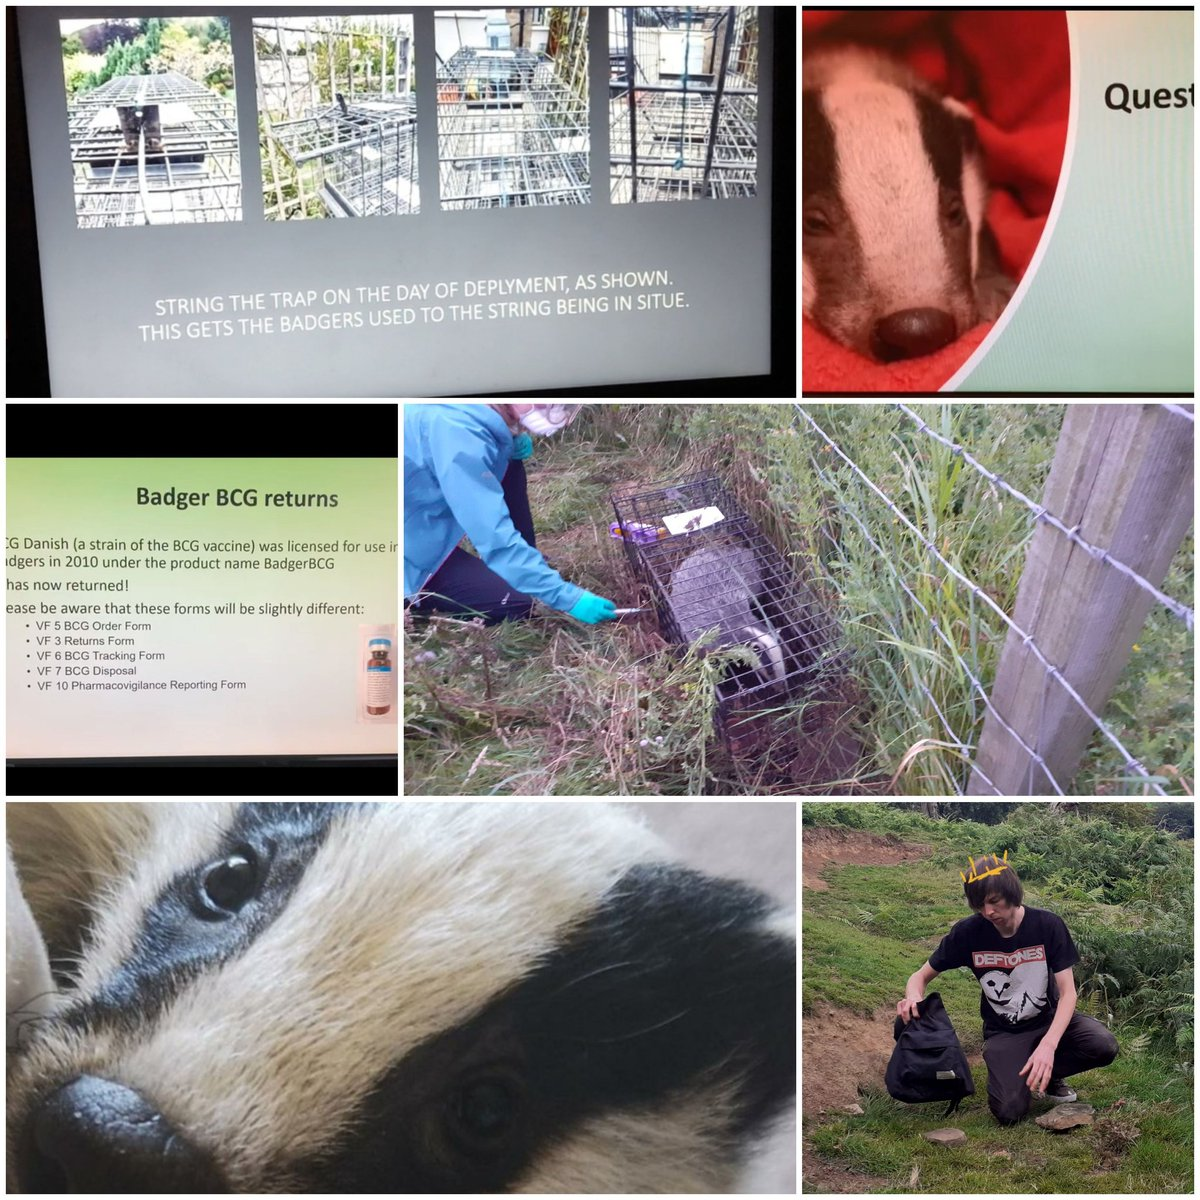 Day 228 #COVID19 #fridaymorning #vaccination @DerbyshireBEVS @HighPeakBadgers @TimBirchWild great day, training with our volunteers,Thanks for your commitment/support special thanks 2 the 3 badger grps @MDBG_badgers @CalderdaleBadg1 @DerbysWildlife @LumpyandFriends @WYP_CNewsome